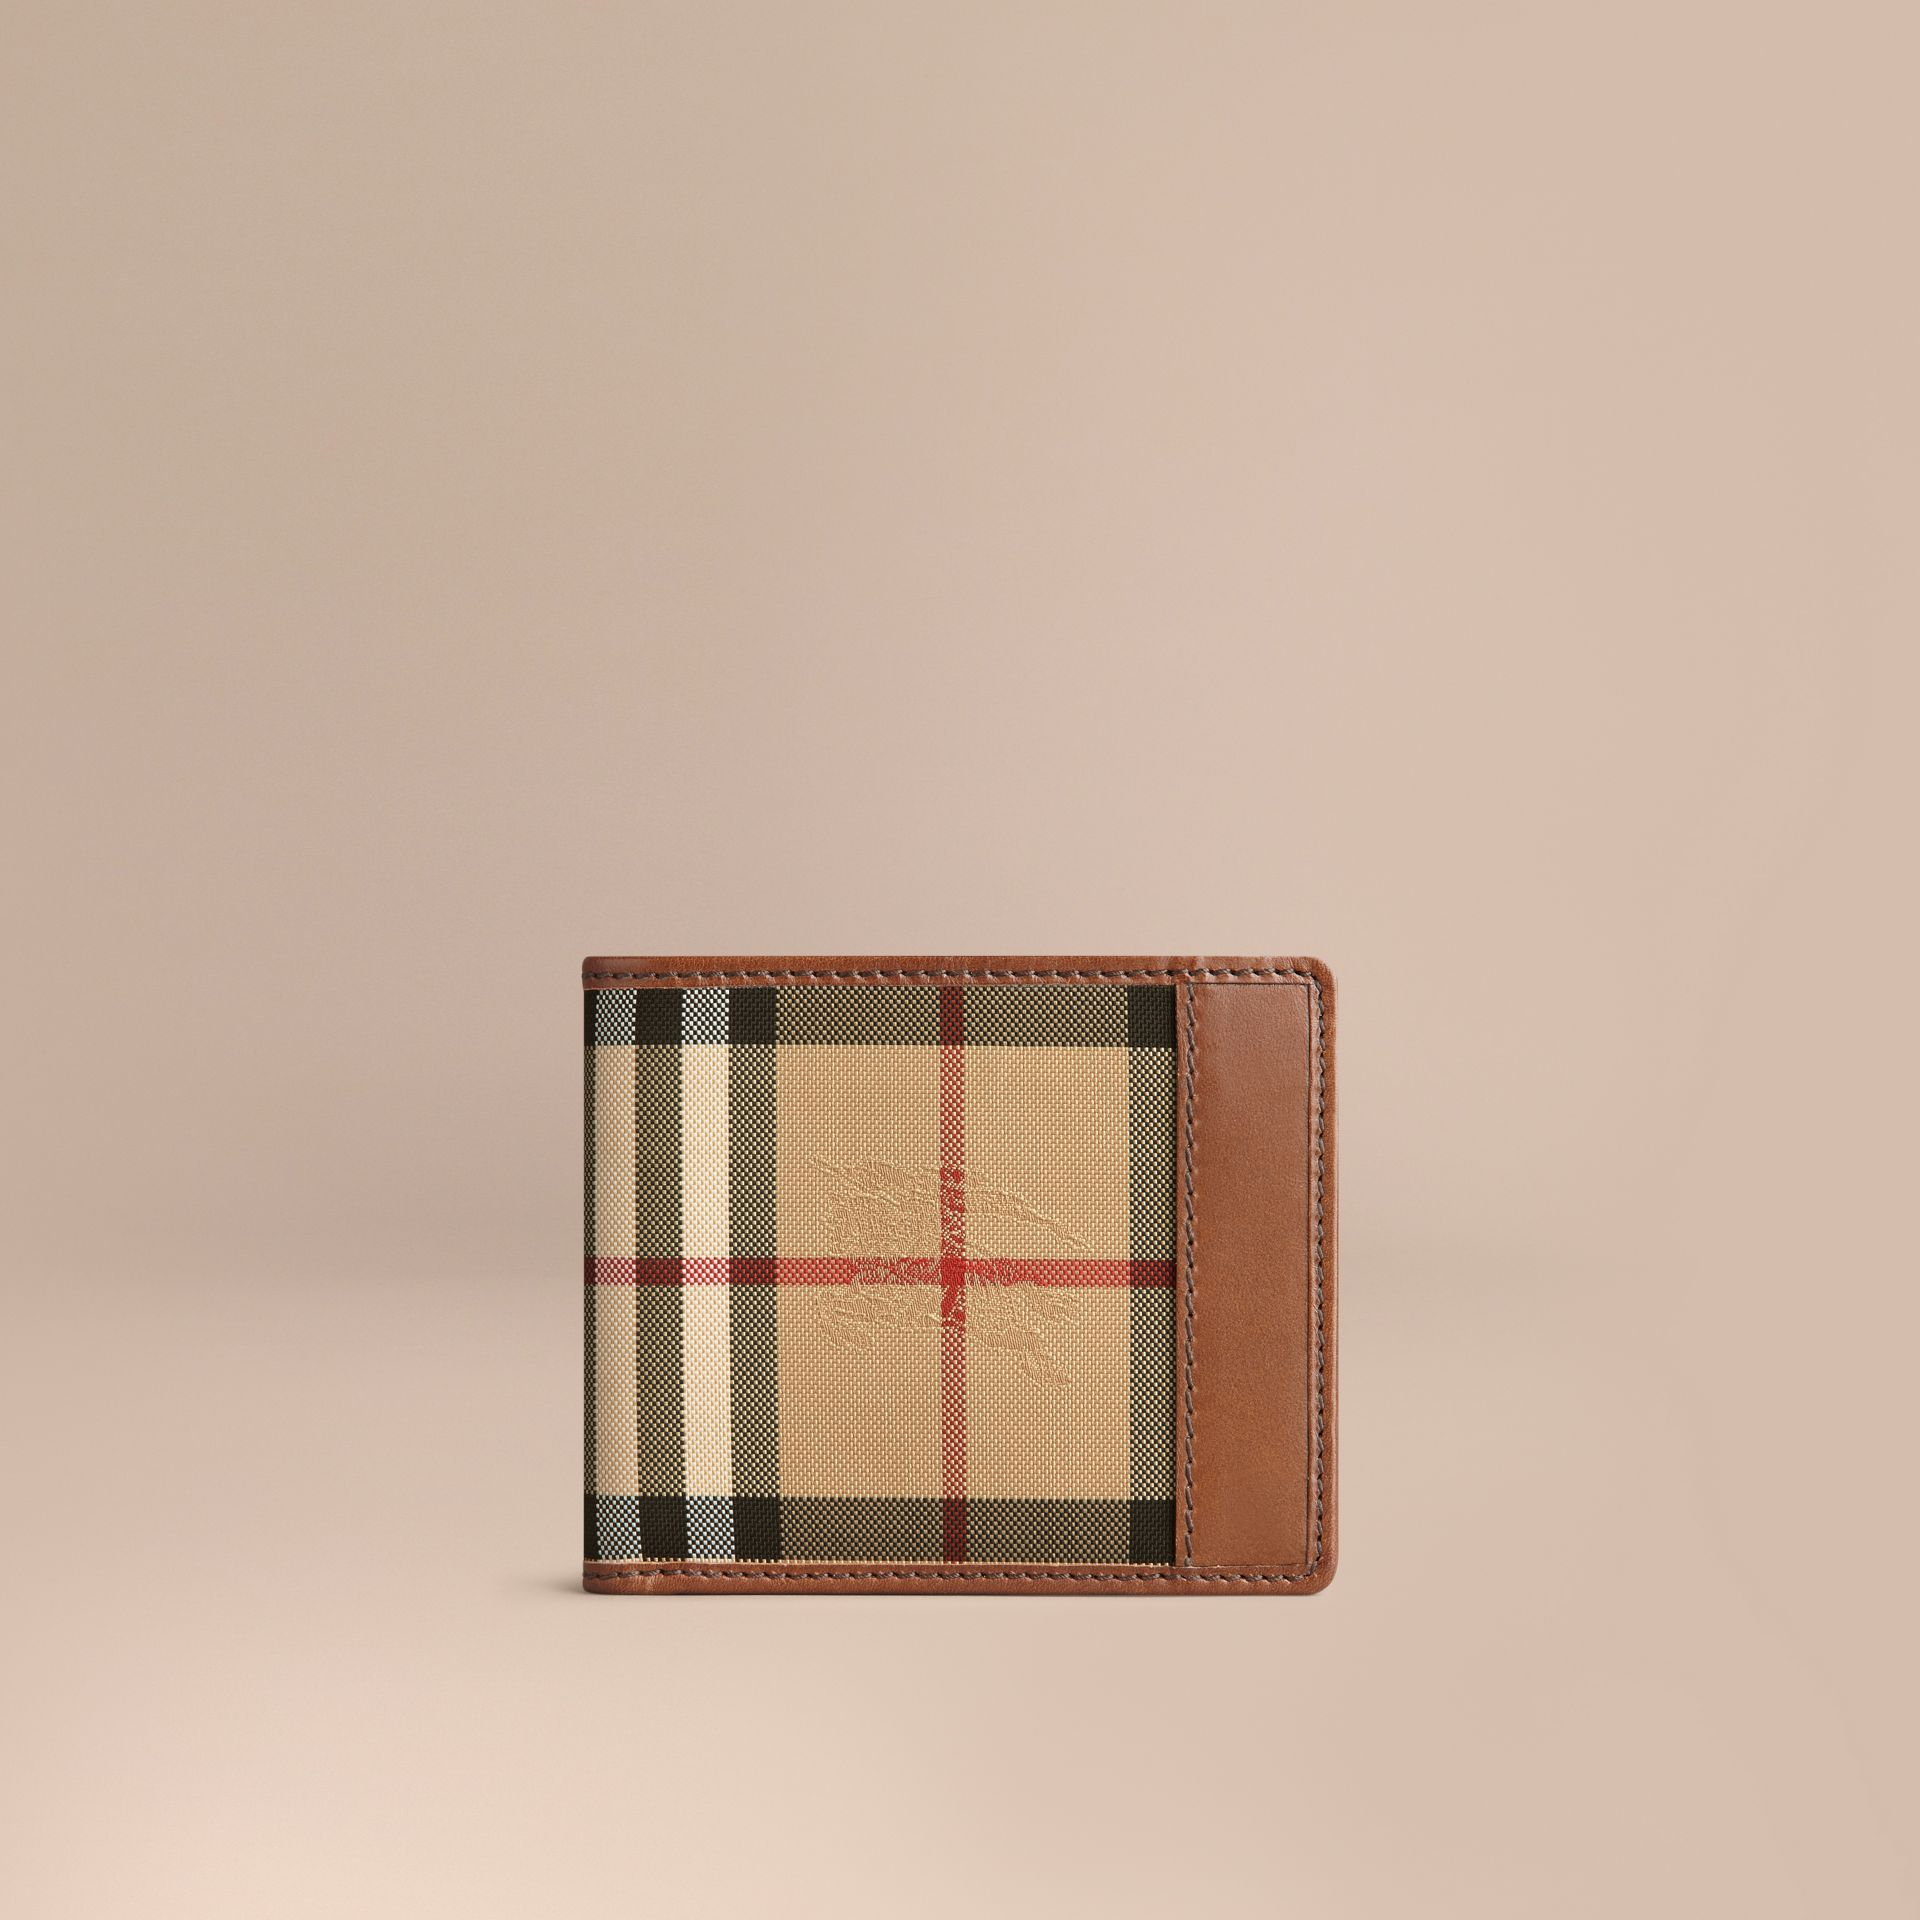 Horseferry Check ID Wallet in Tan - Men | Burberry - gallery image 1